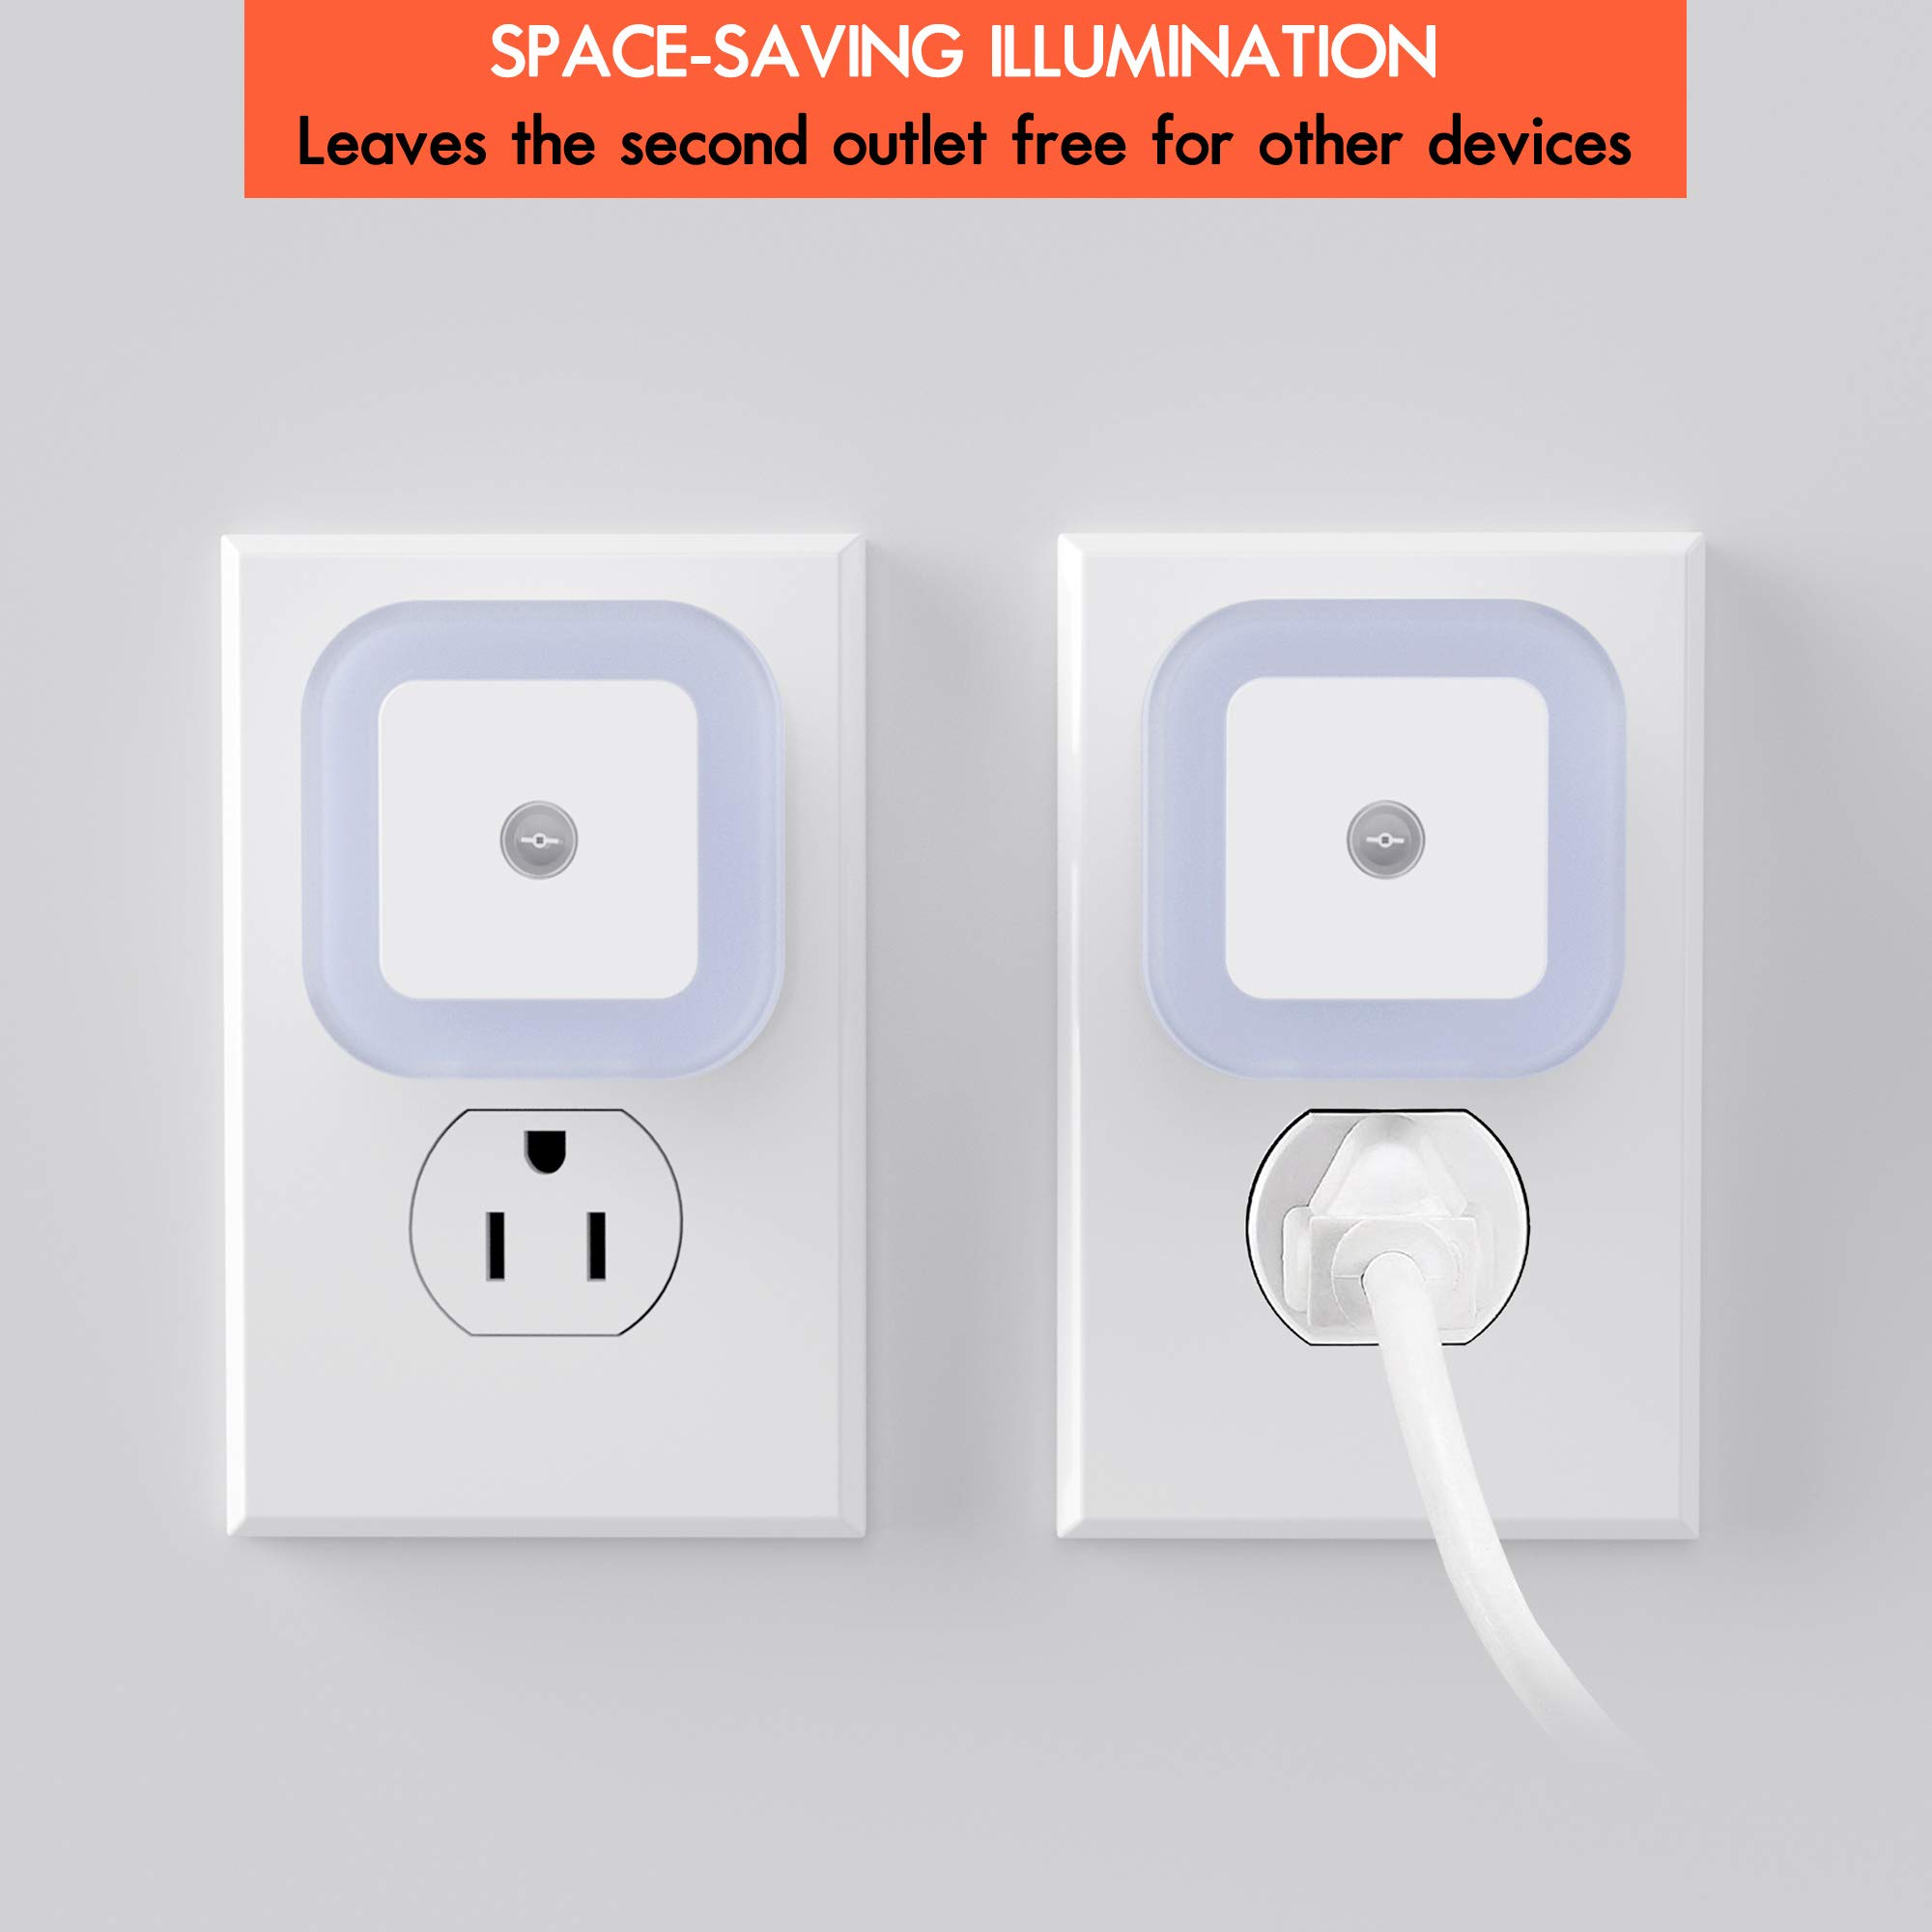 Sycees Plug-in LED Night Light with Dusk-to-Dawn Sensor for Bedroom, Bathroom, Kitchen, Hallway, Stairs, Daylight White, 6-Pack by SYCEES (Image #3)